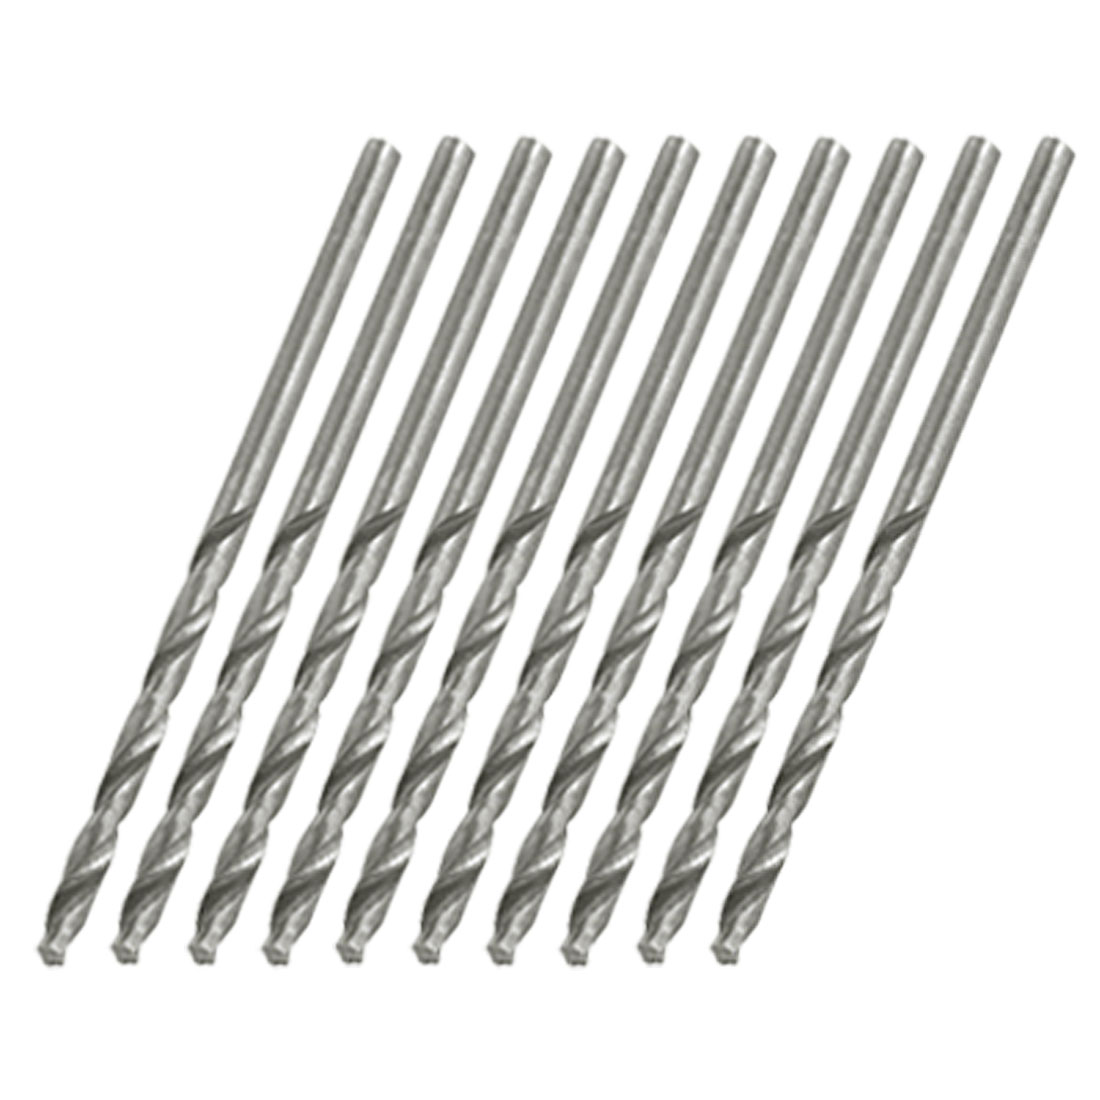 10 x Straight Shank Spiral Twist Drill Drilling Bits 2.3mm